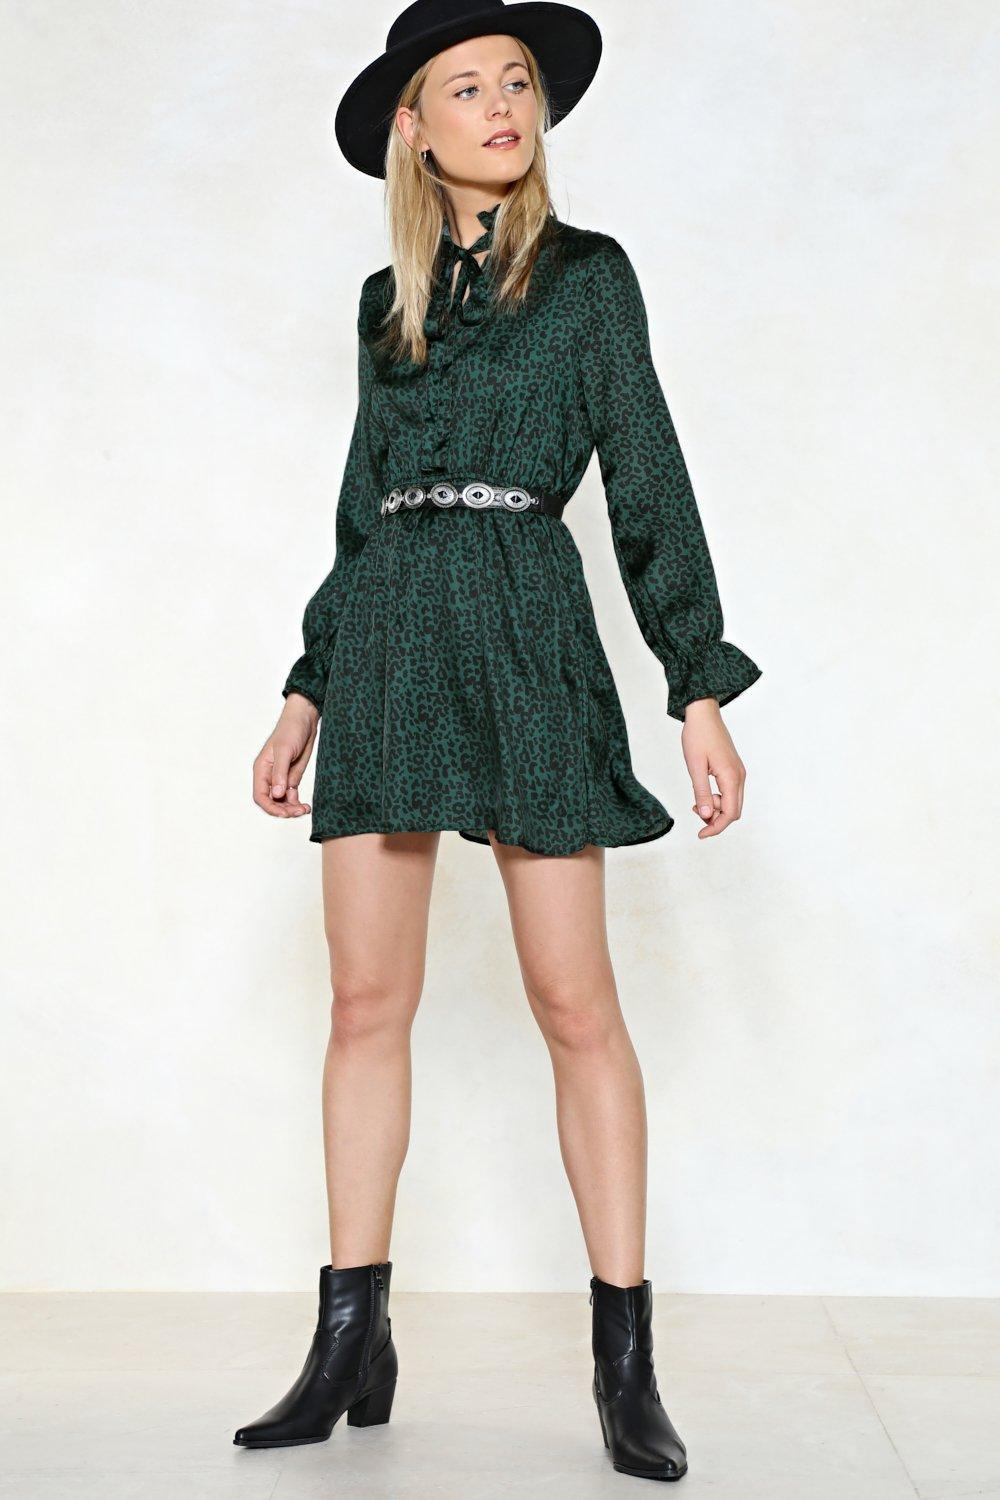 Nasty Gal Animal Print Pussybow Mini Dress In Satin Animal Print Pussybow Mini Dress In Satin in Teal (Green)